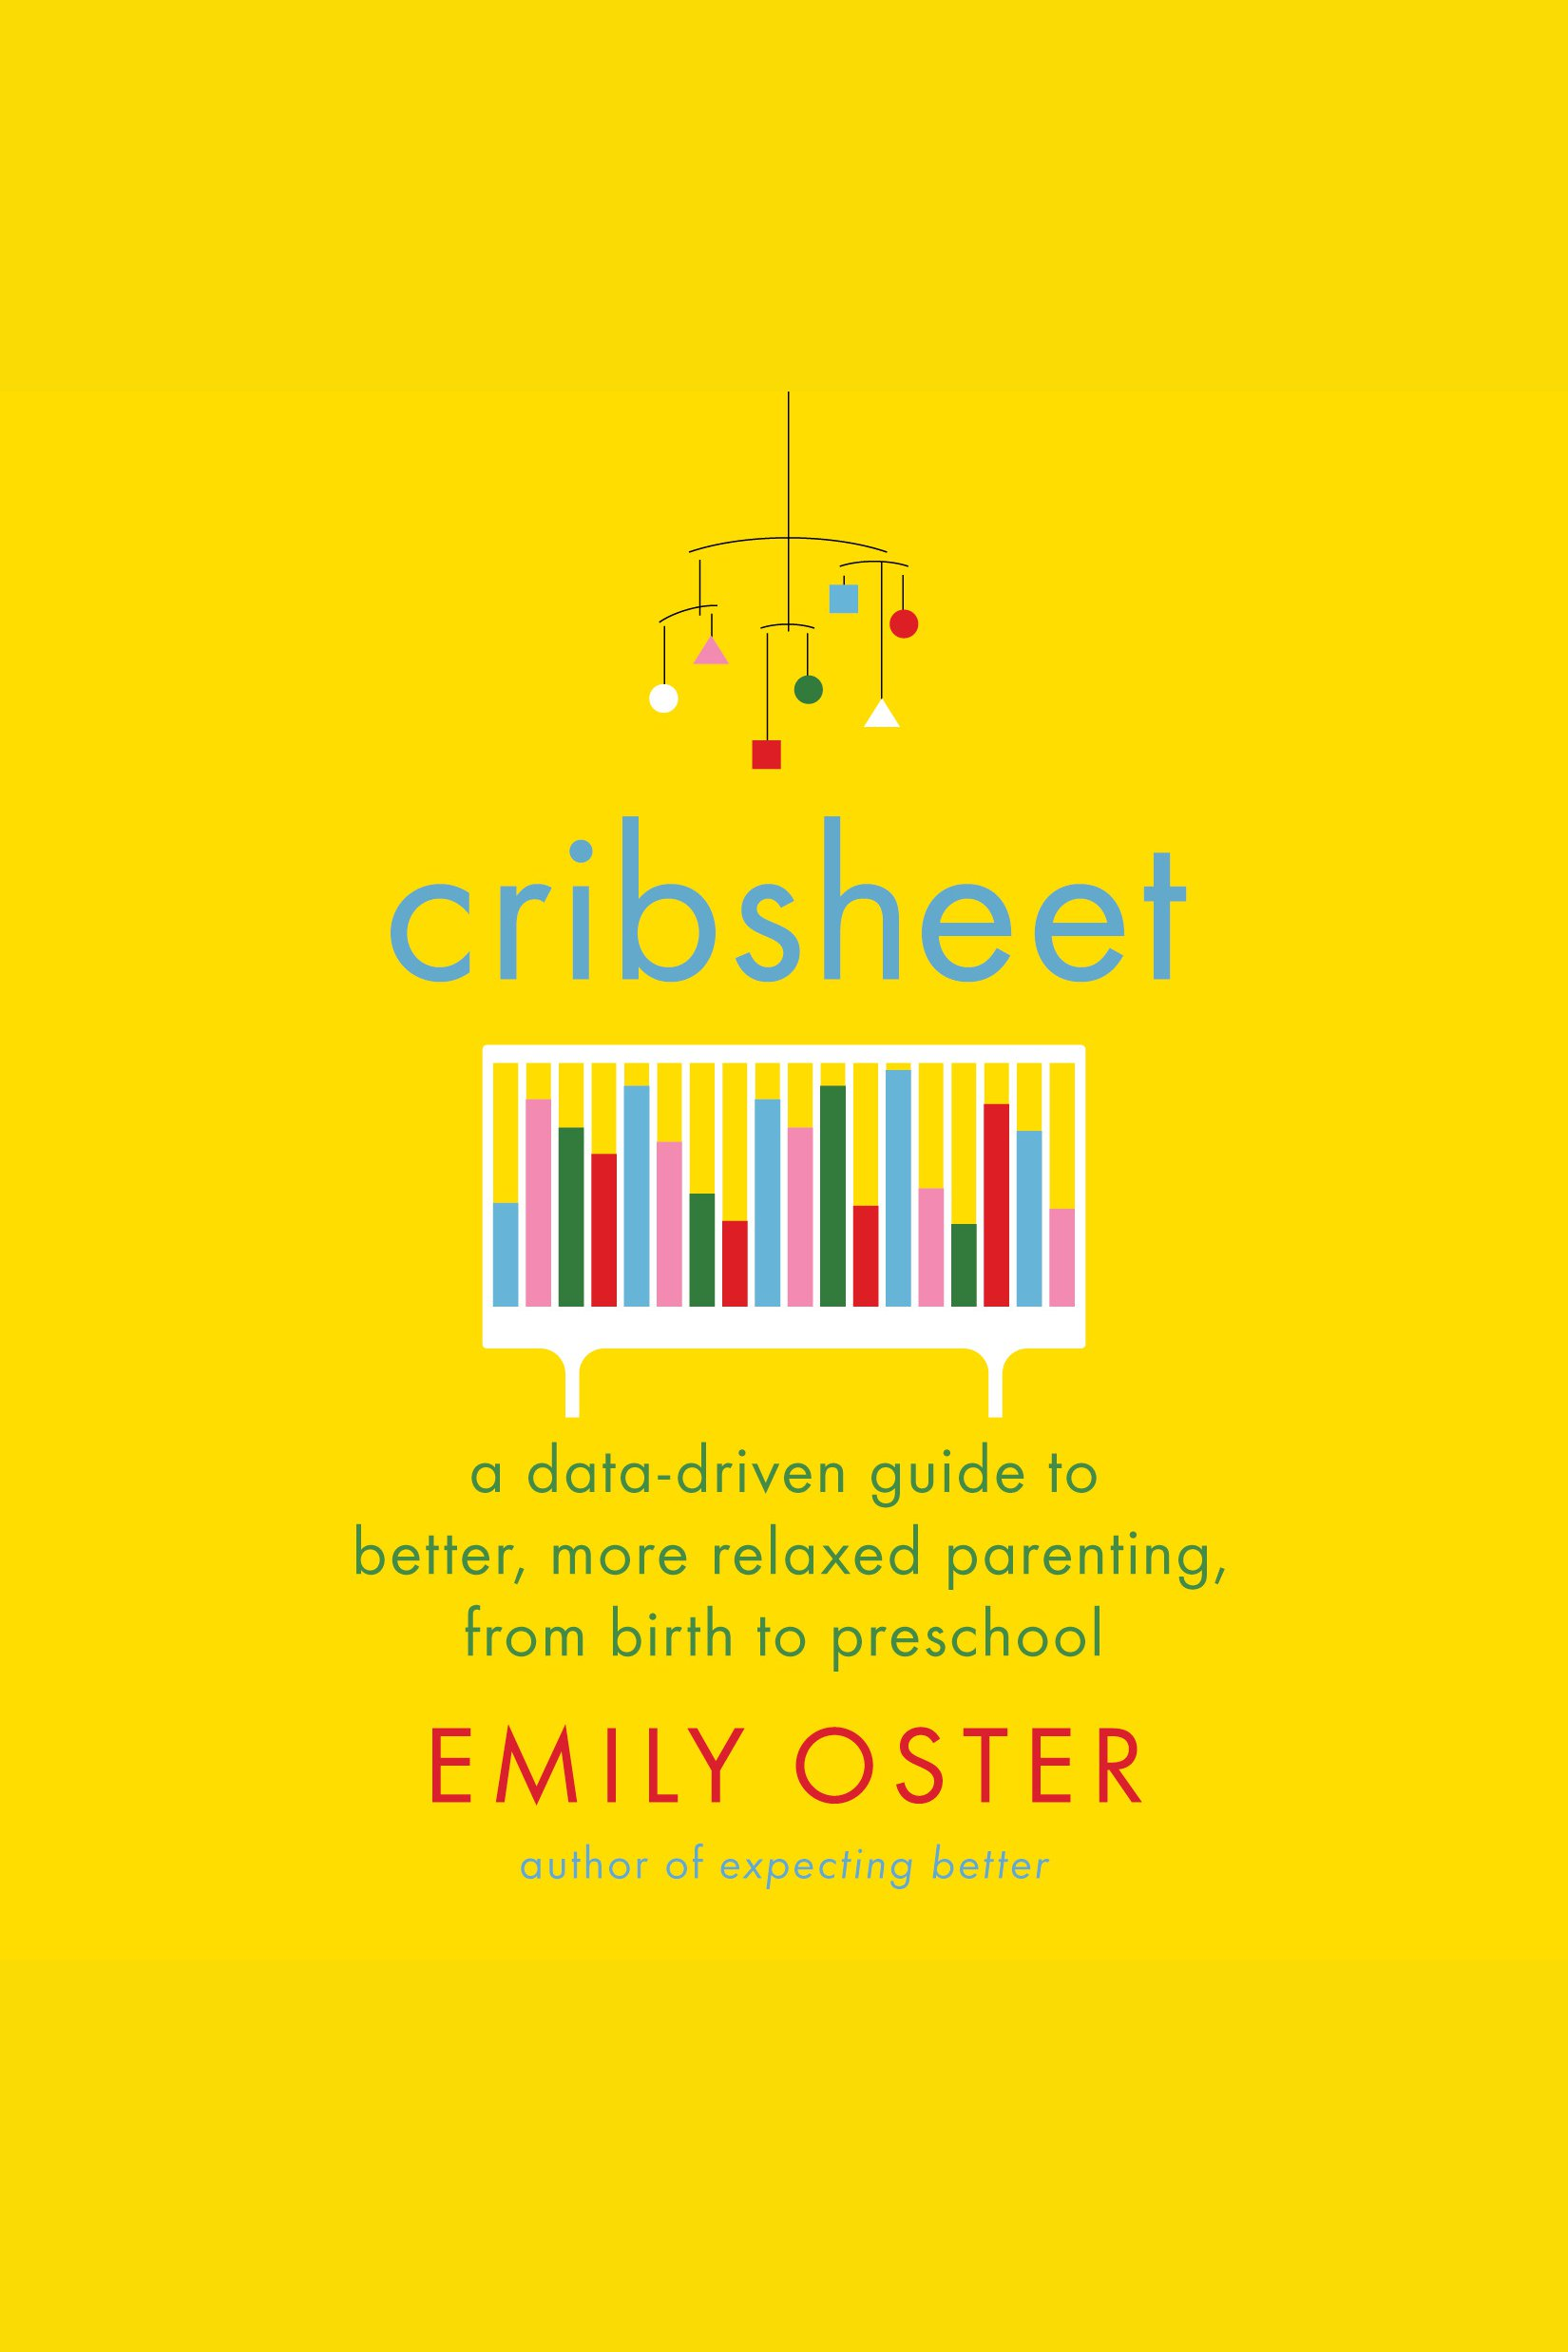 Cribsheet A Data-Driven Guide to Better, More Relaxed Parenting, from Birth to Preschool